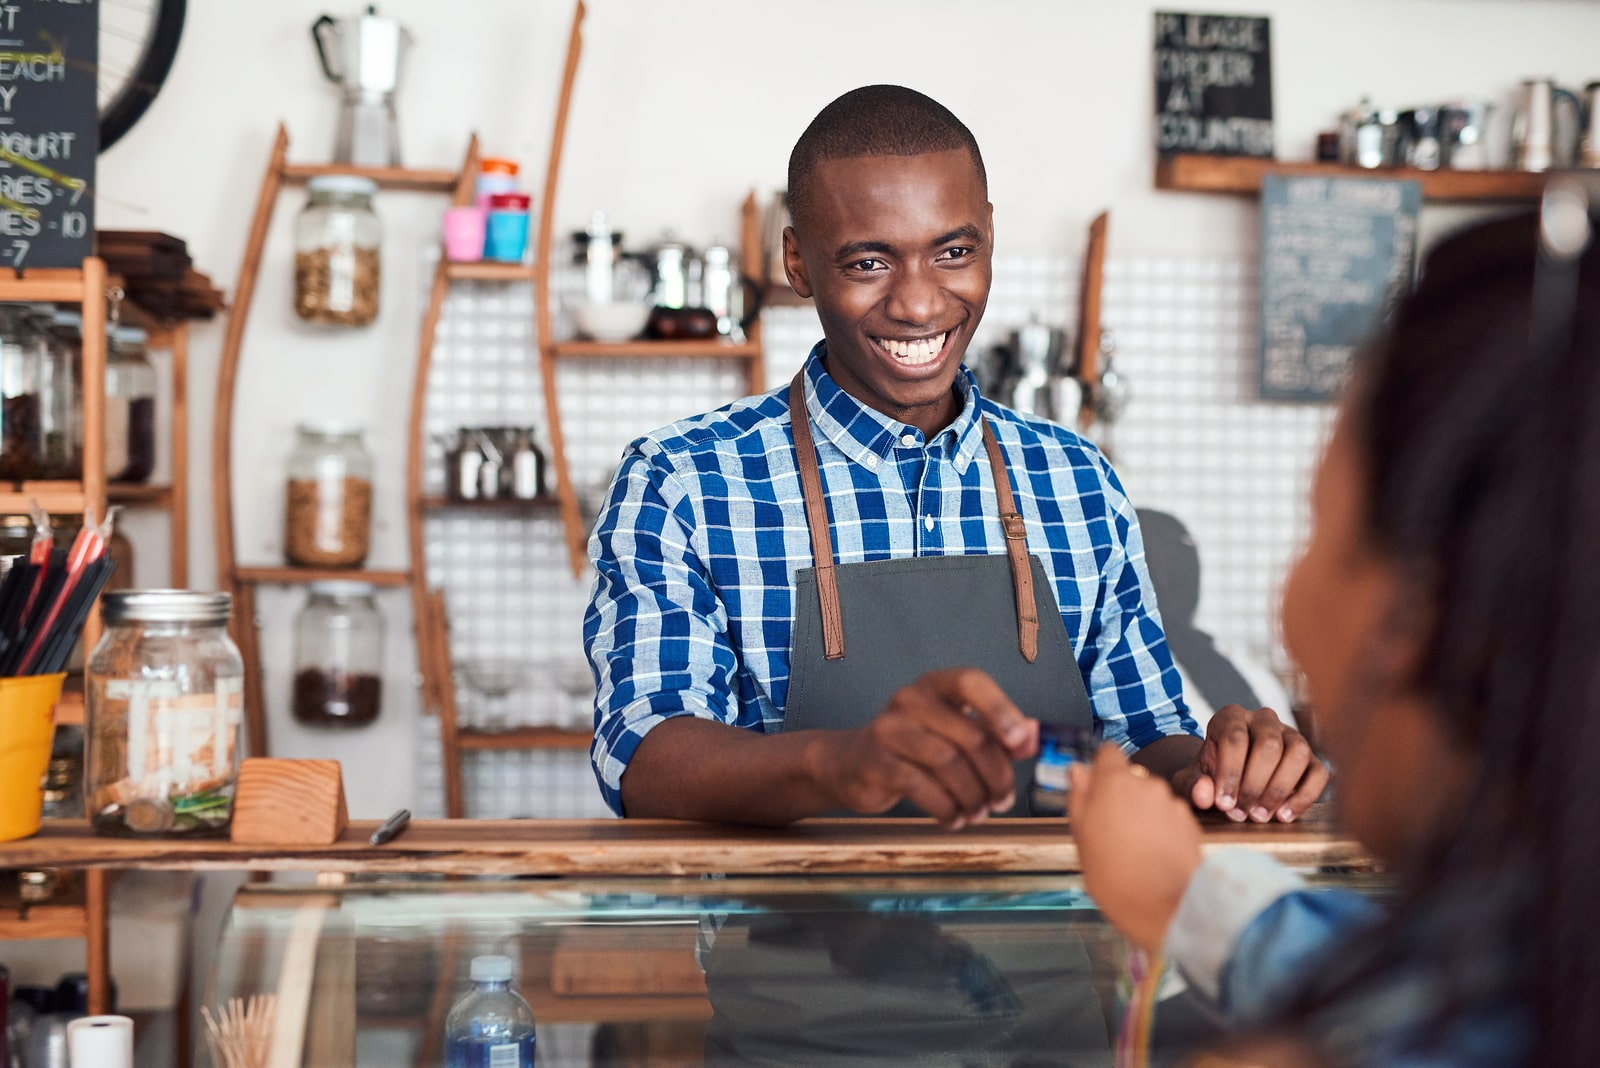 Top 10 problems for small businesses in Nigeria and solution